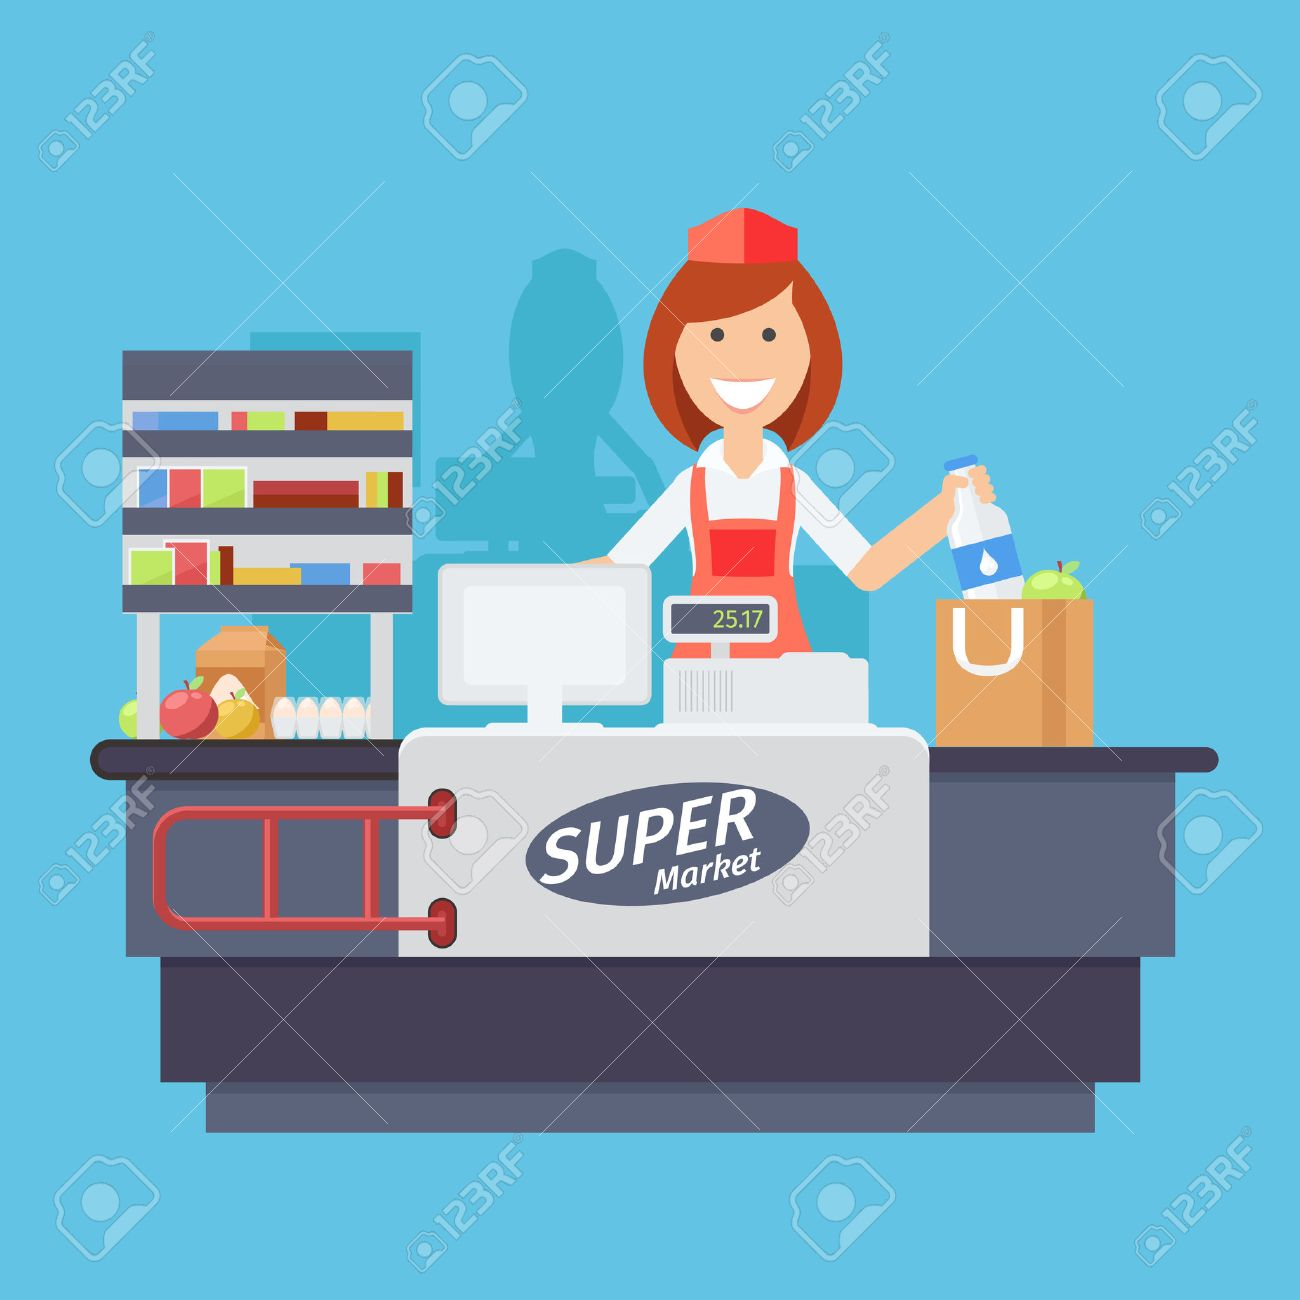 Supermarket store counter desk equipment and clerk in uniform ringing up grocery purchases. Flat style vector illustration isolated on white background. Foto de archivo - 47070659